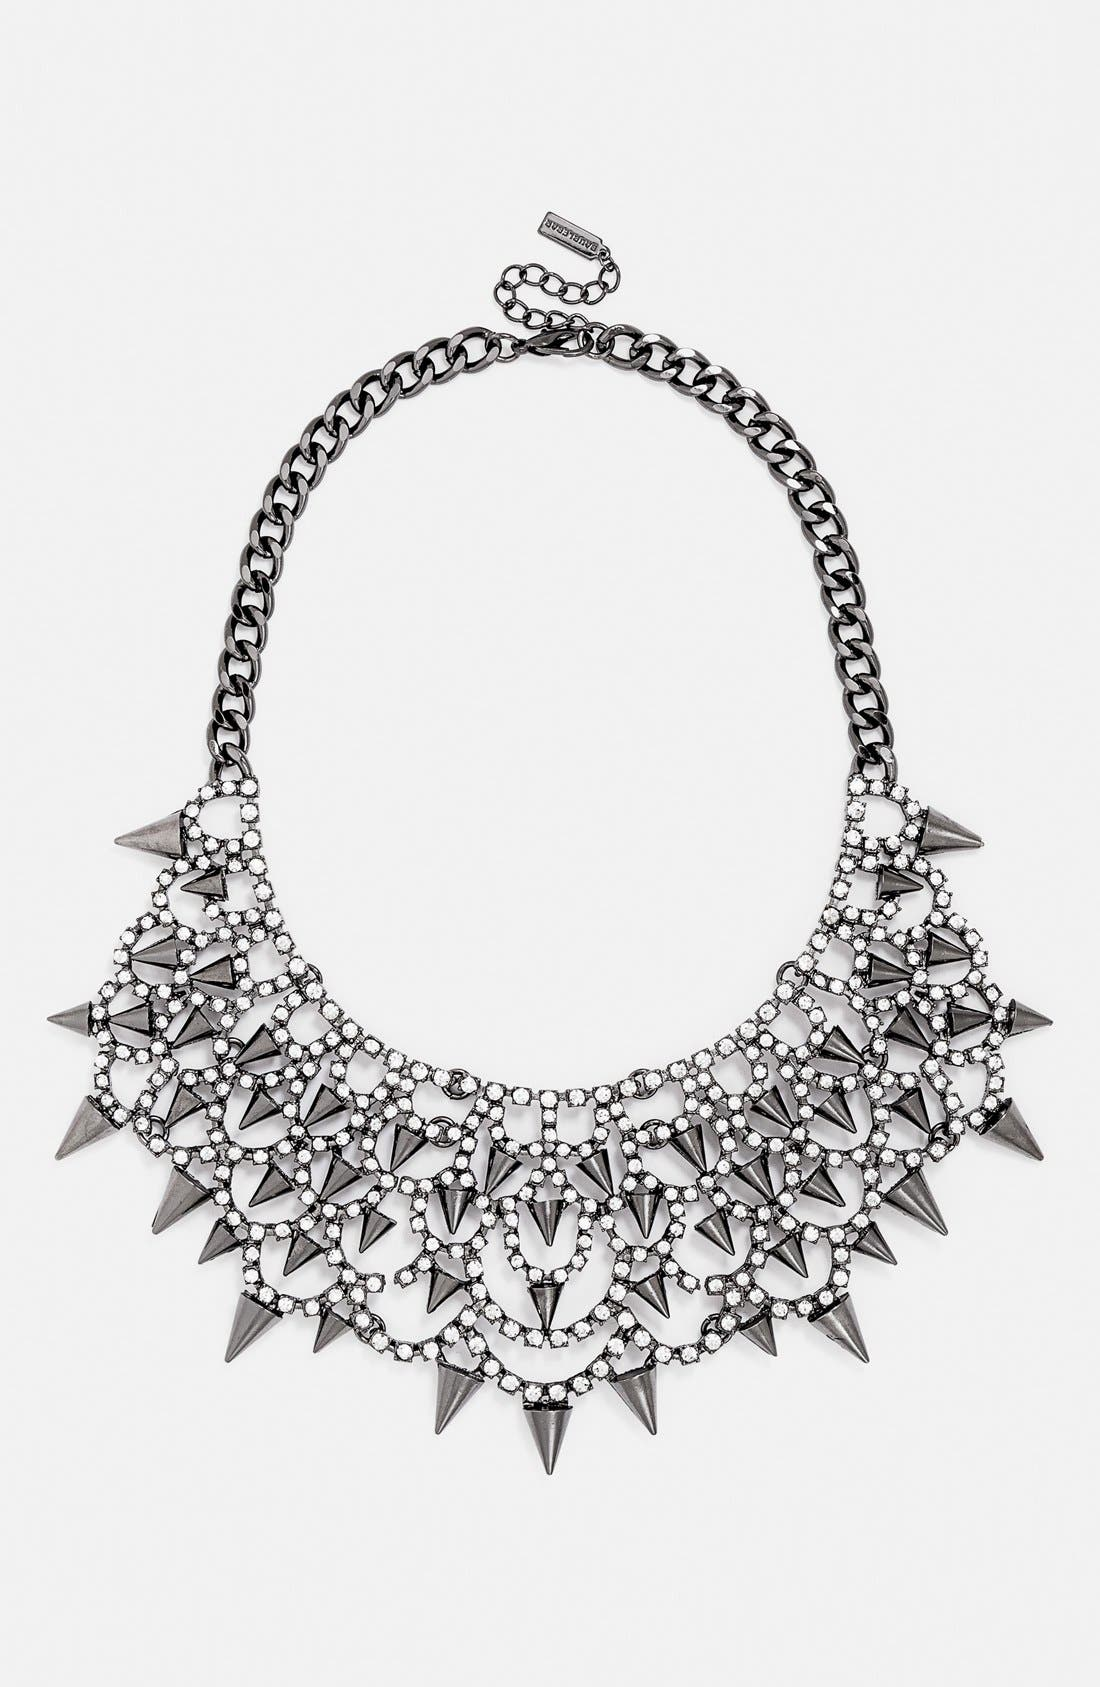 'Gothic Fang' Bib Necklace,                         Main,                         color, Heamtite/ Clear